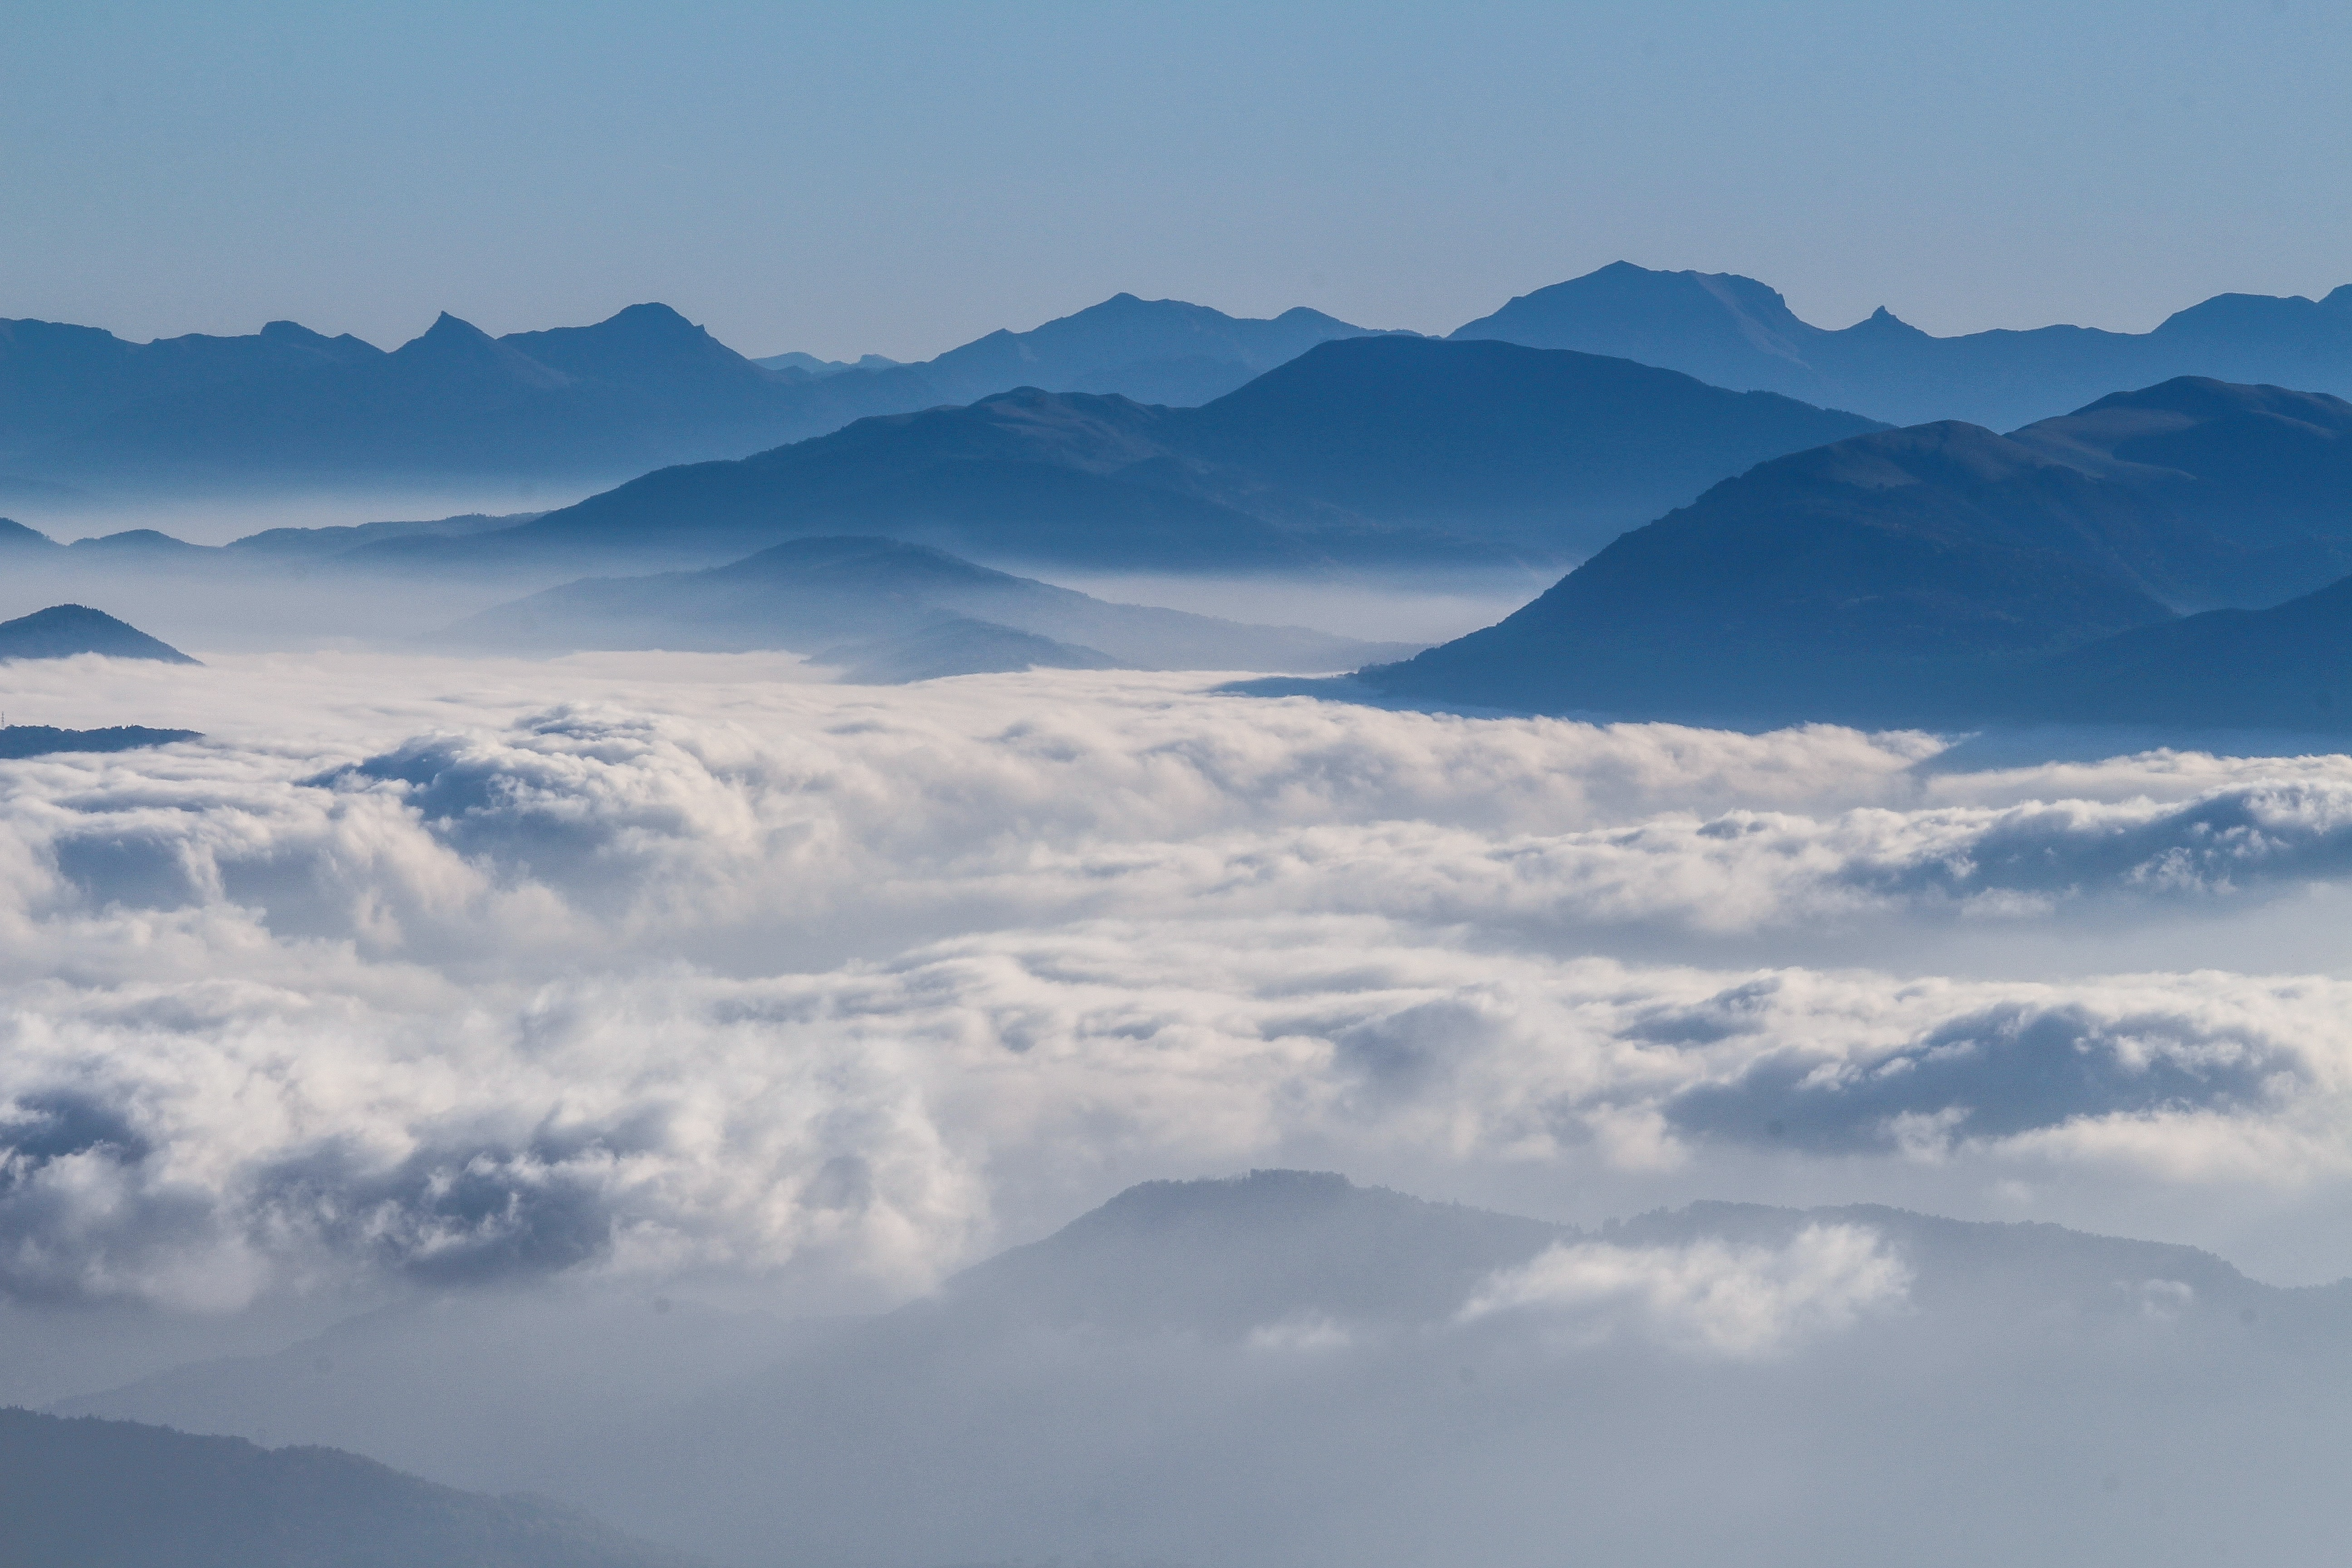 Silhouettes of mountains rising up above a thick cover of clouds